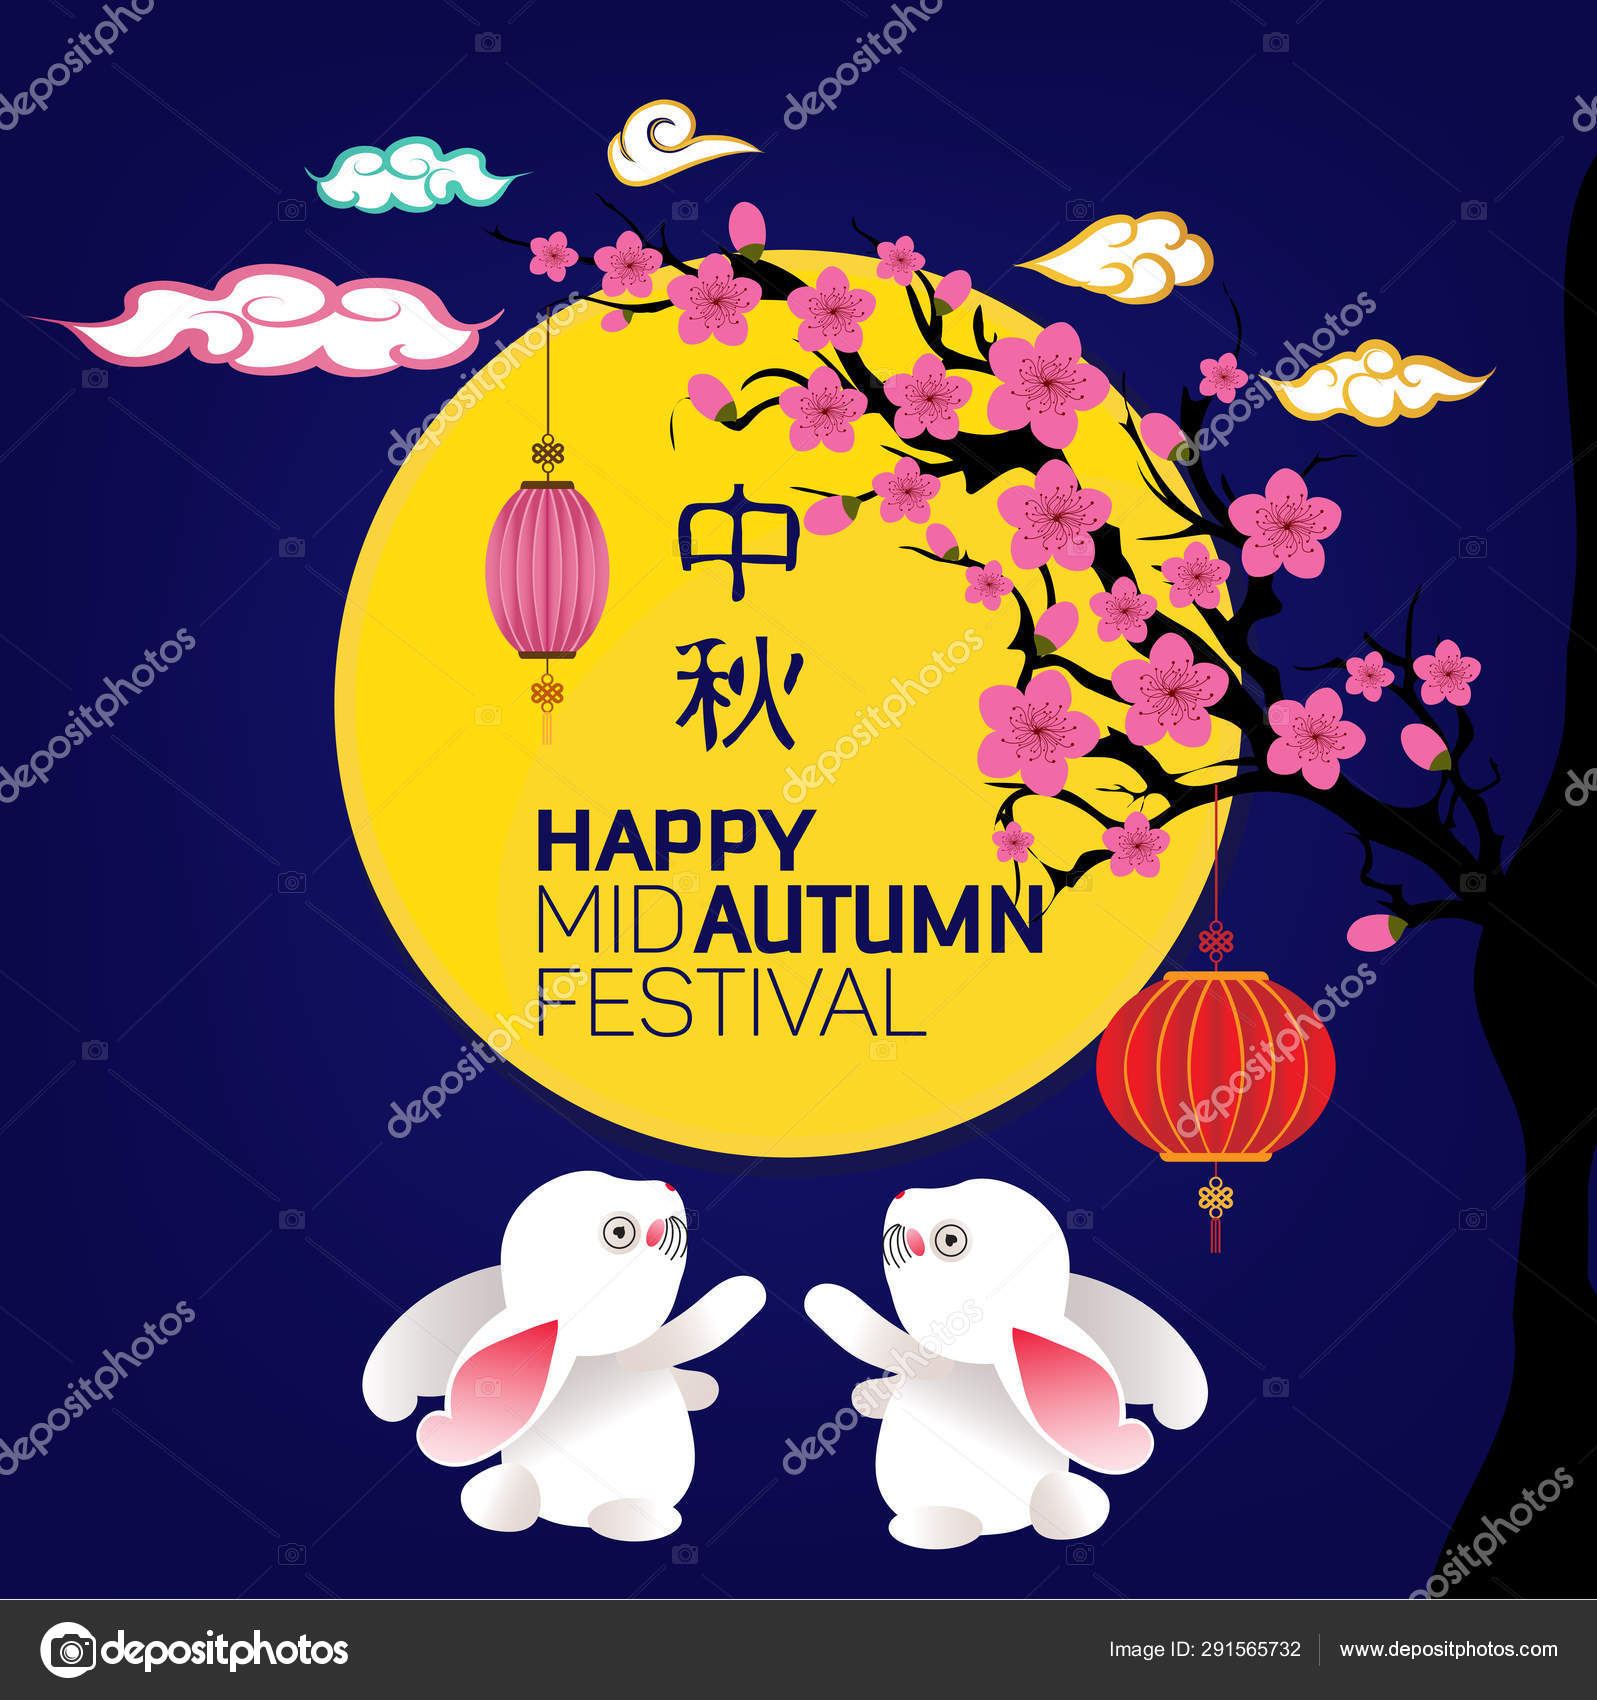 Mid Autumn Festival 2020.Mid Autumn Lantern Festival Background Chinese New Year 2020